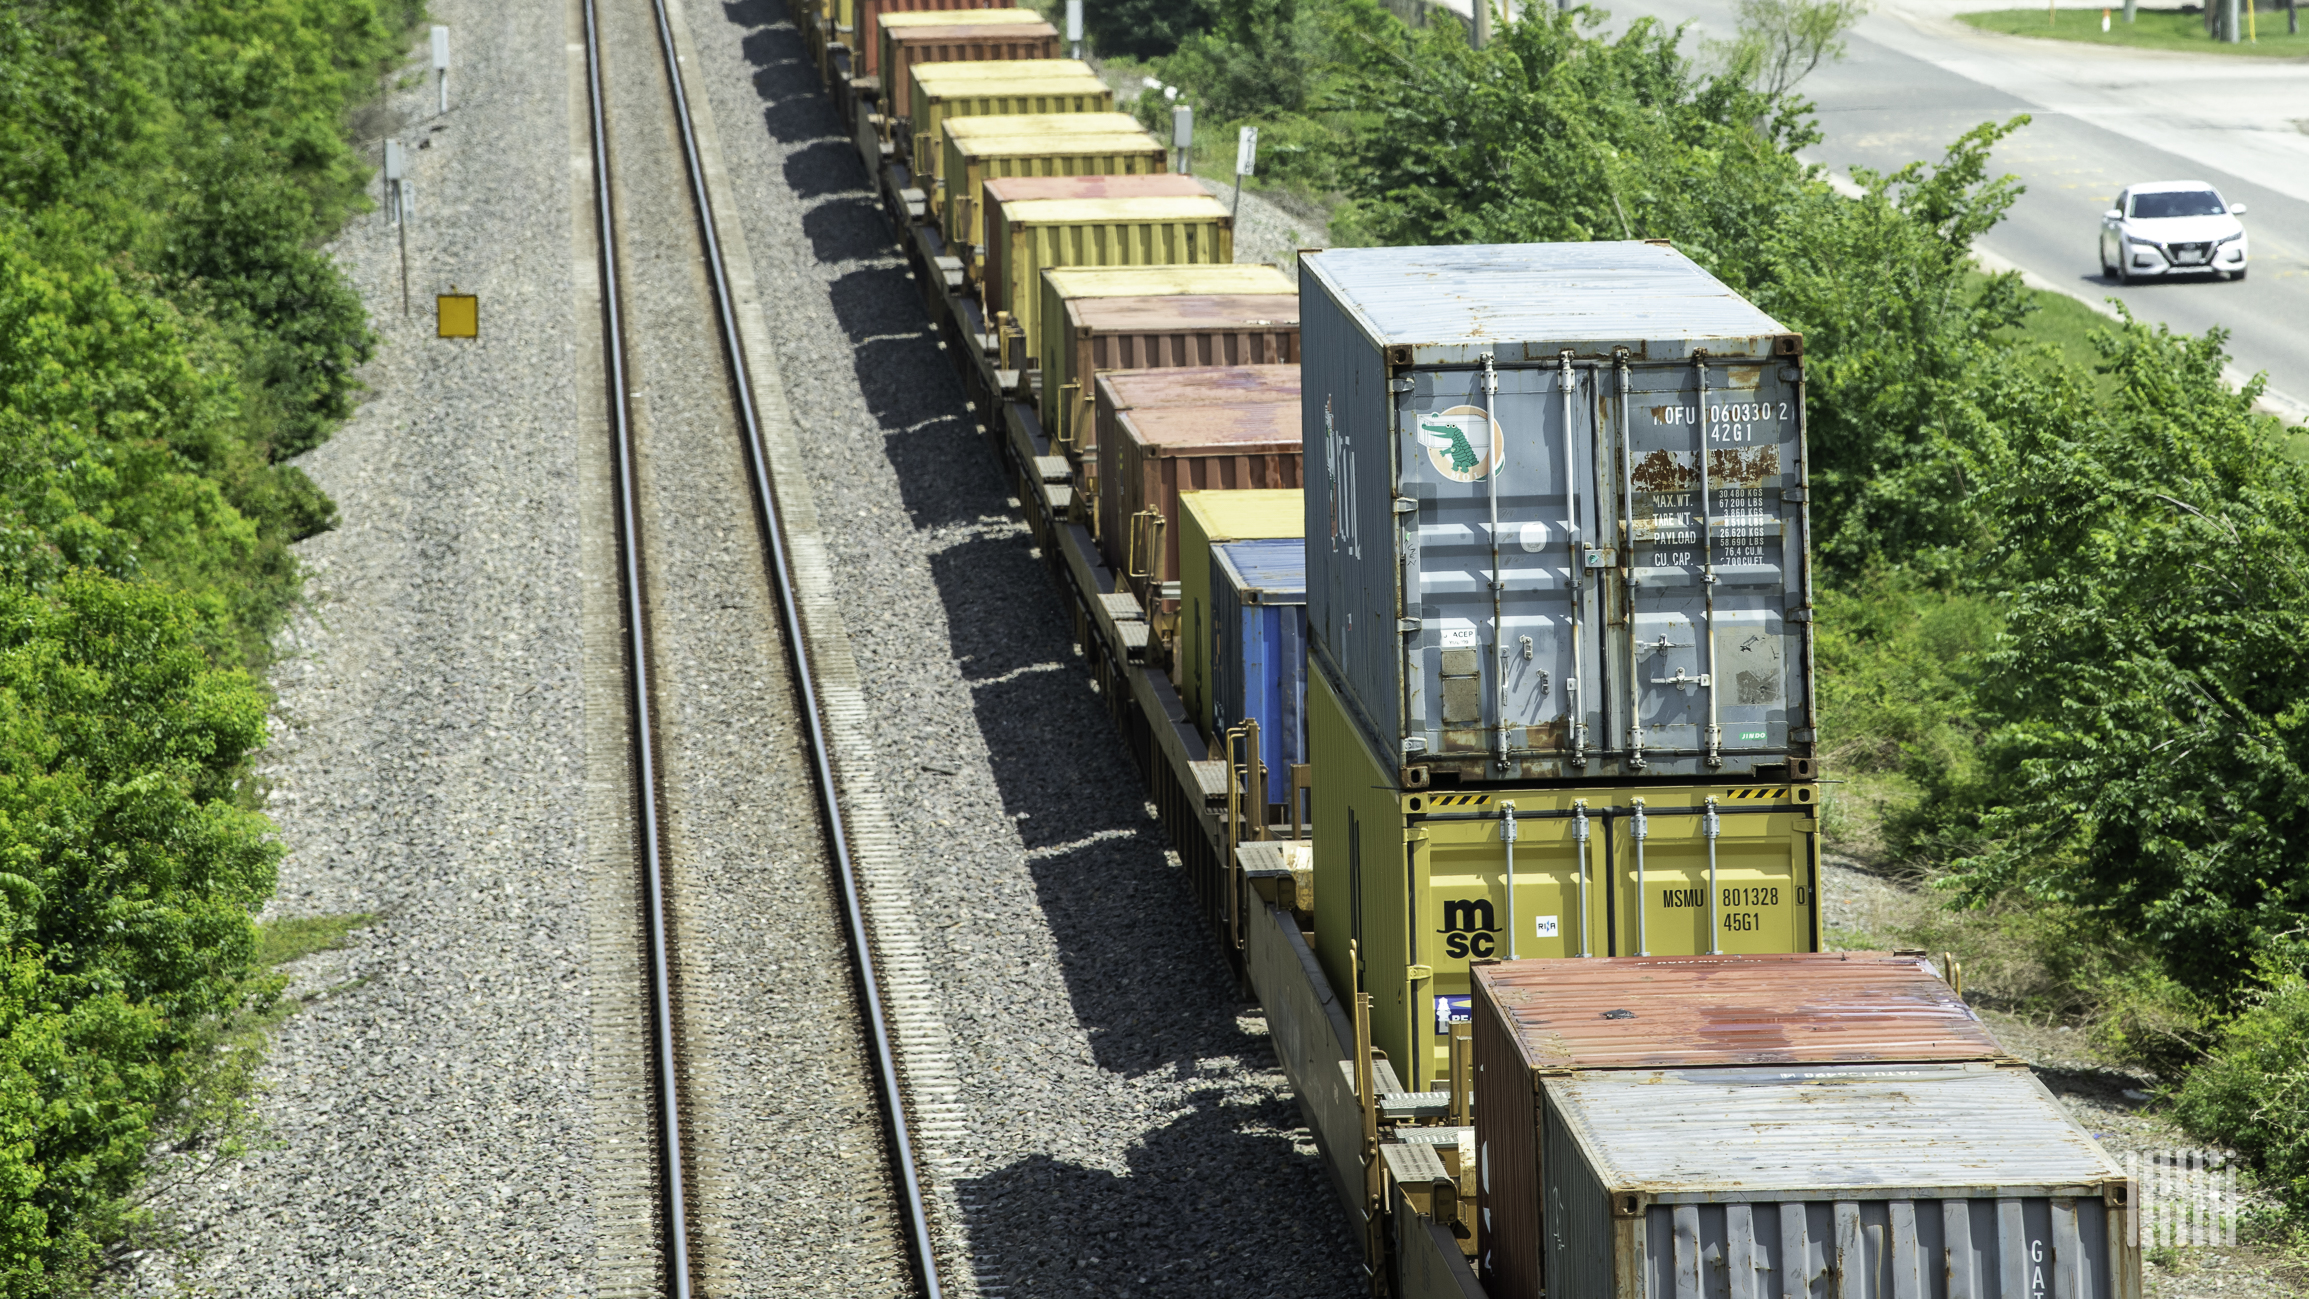 A photograph of intermodal containers being hauled by a freight train.